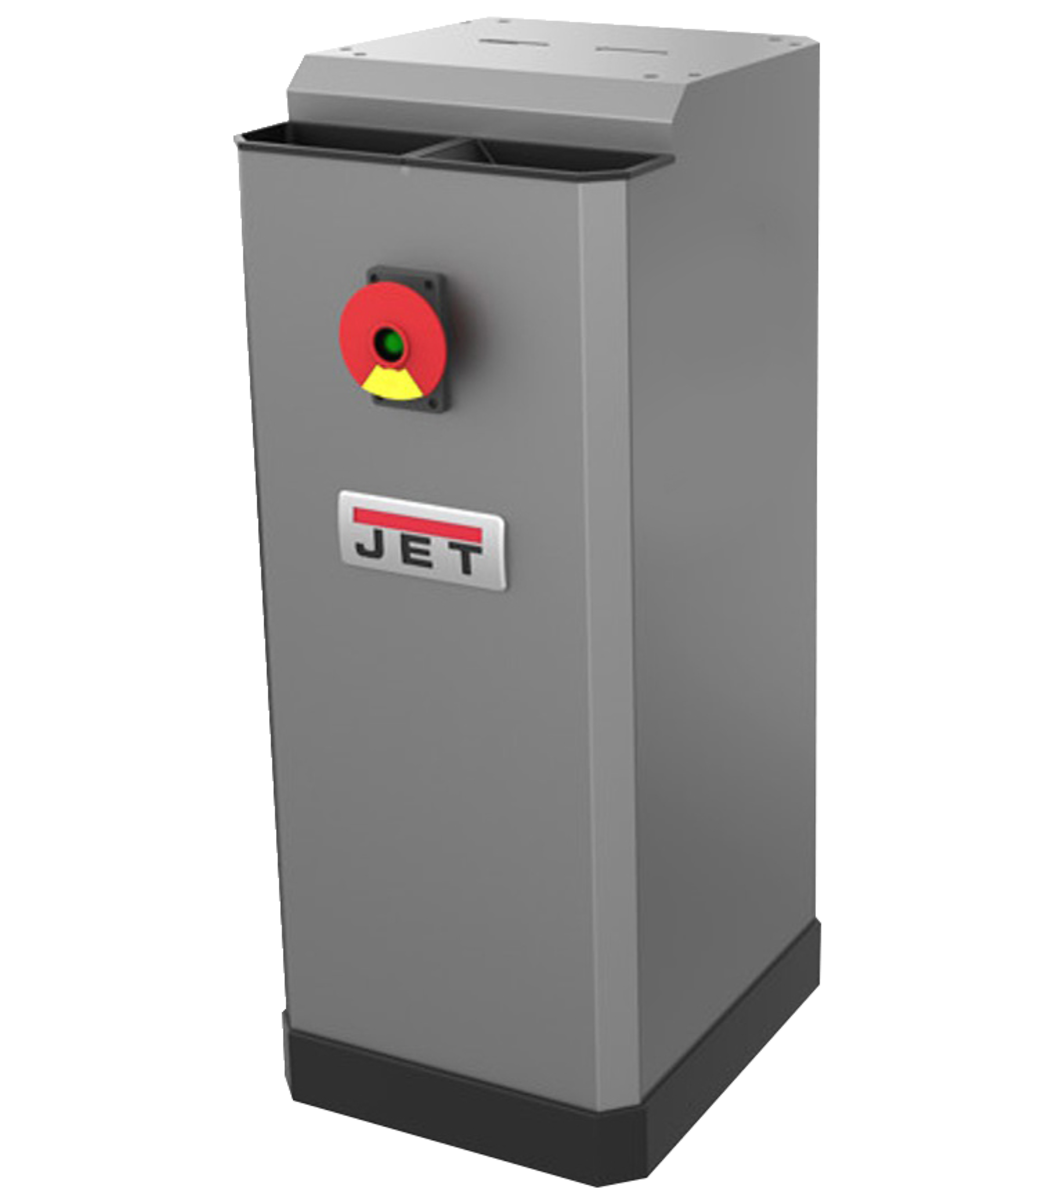 JDCS-505, Metal Dust Collector Stand 115V